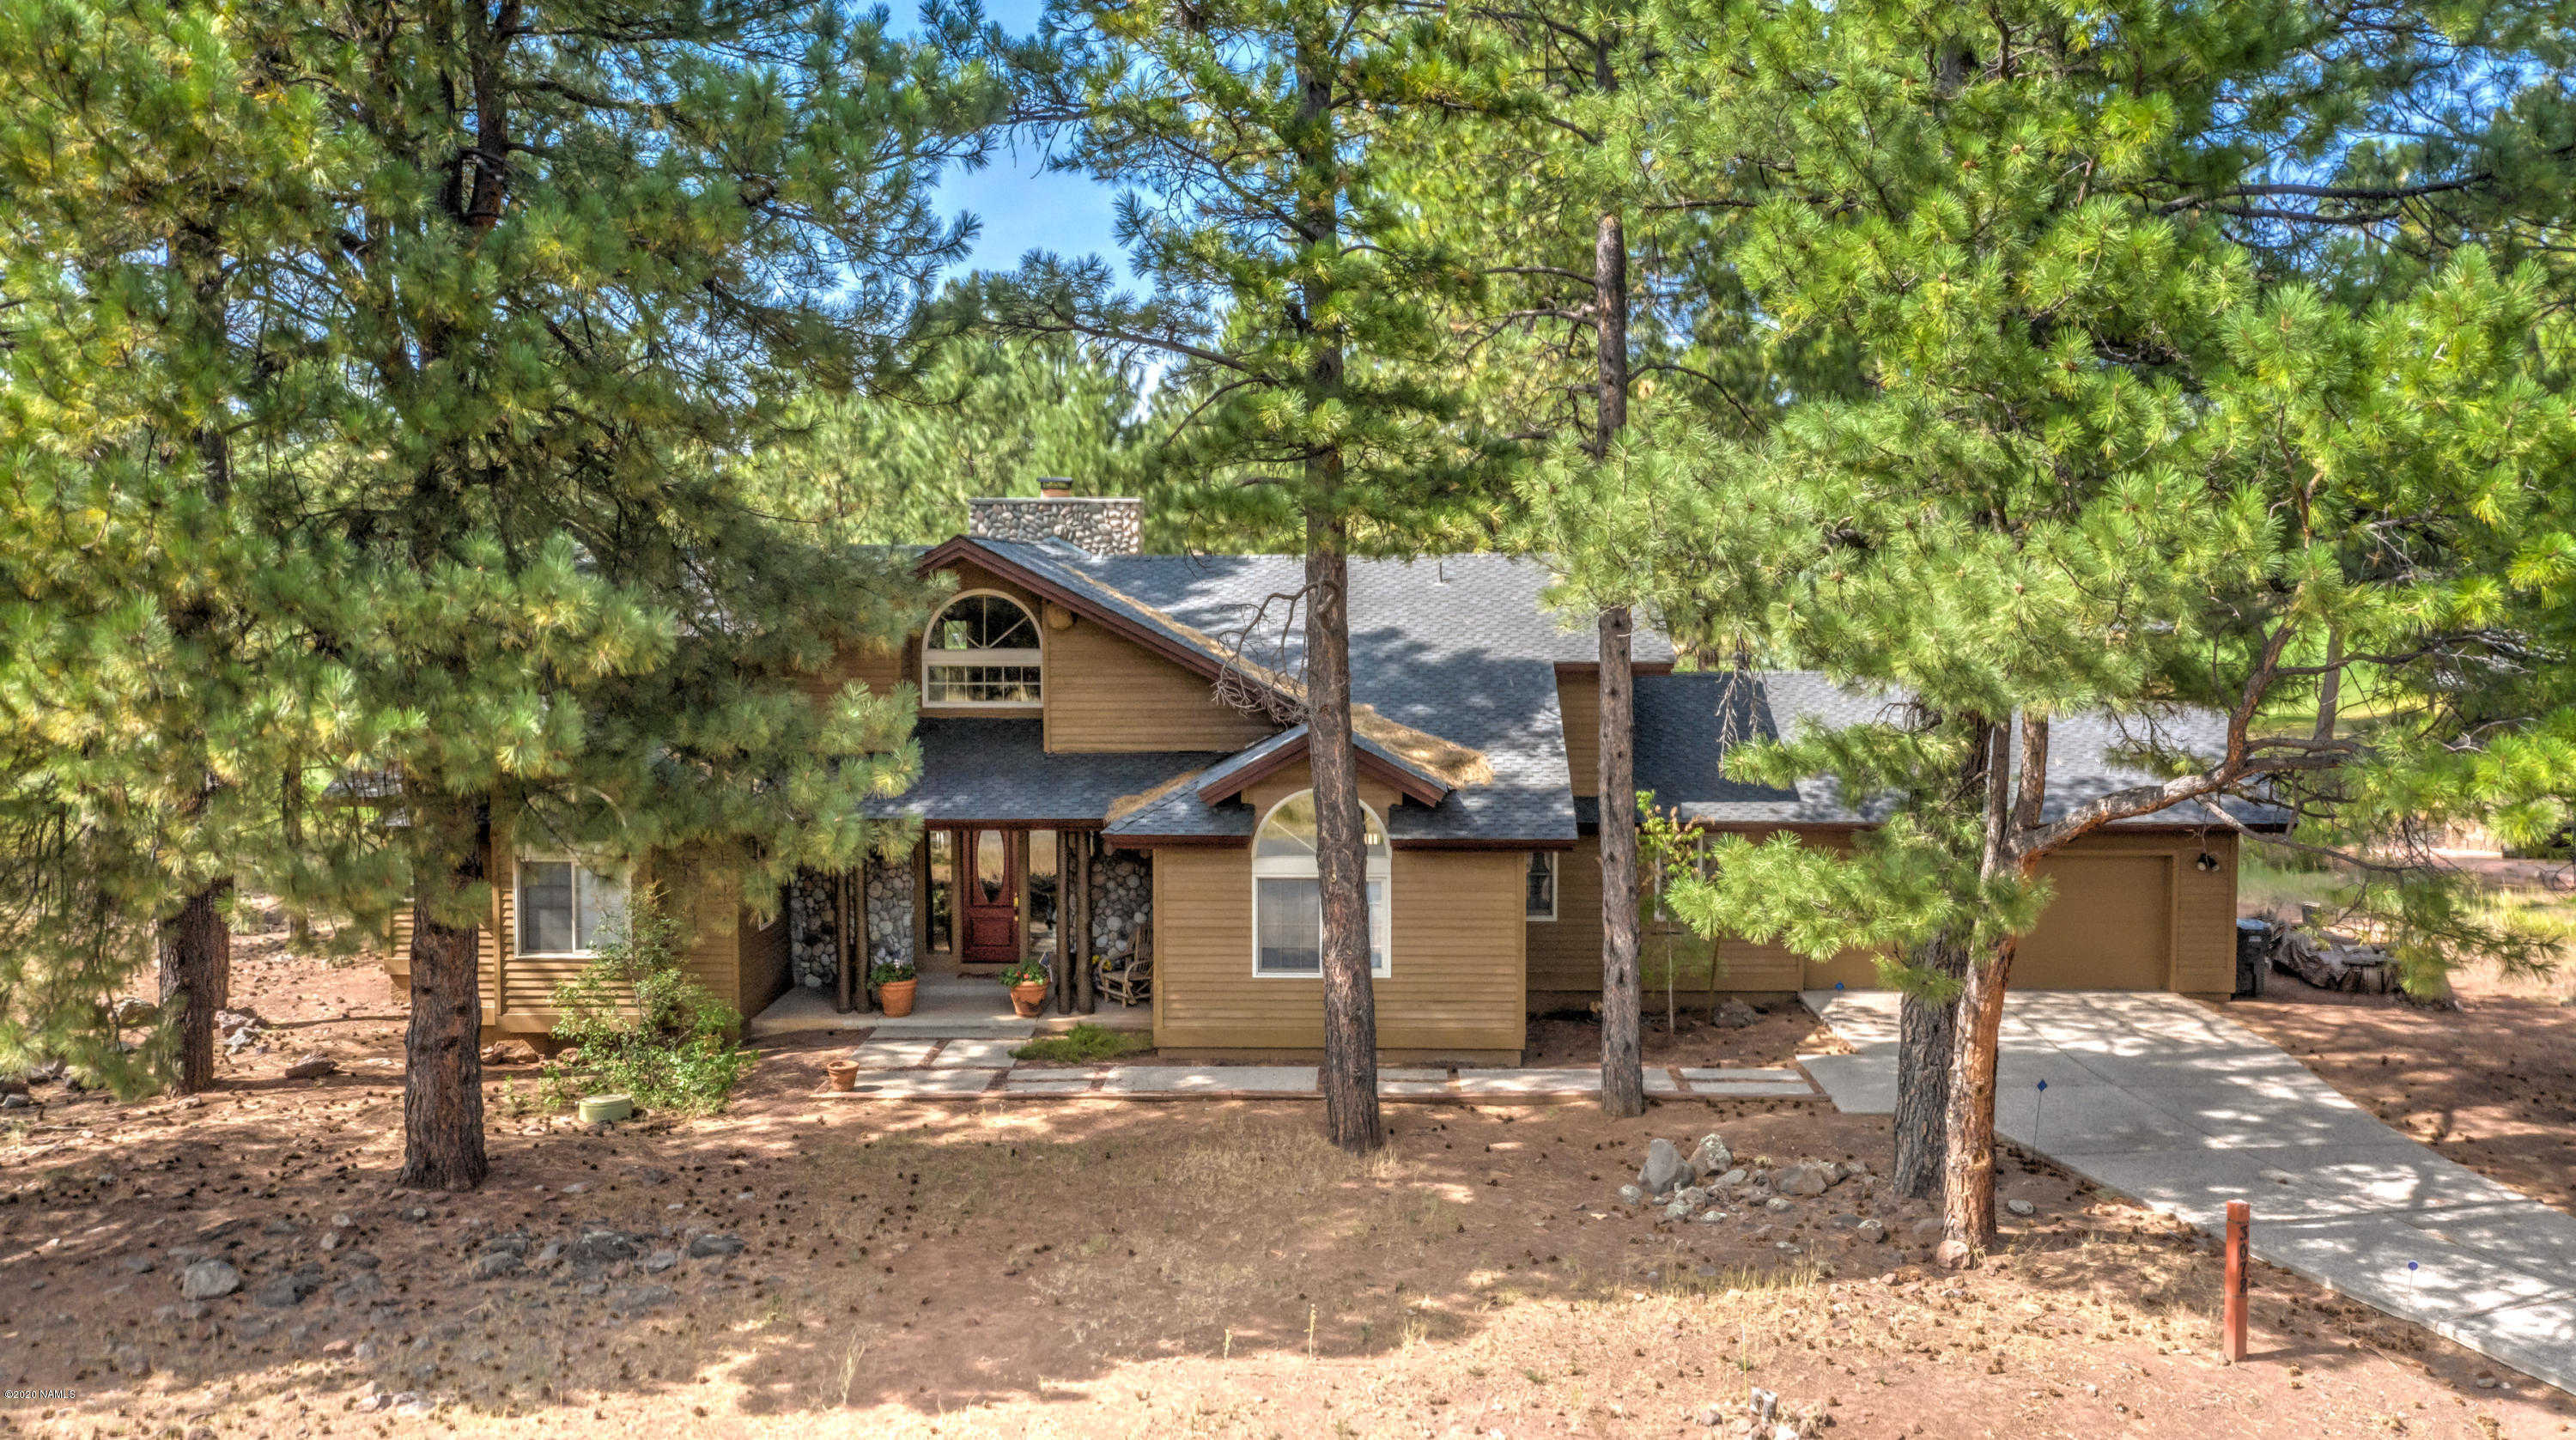 $785,000 - 4Br/3Ba -  for Sale in Flagstaff